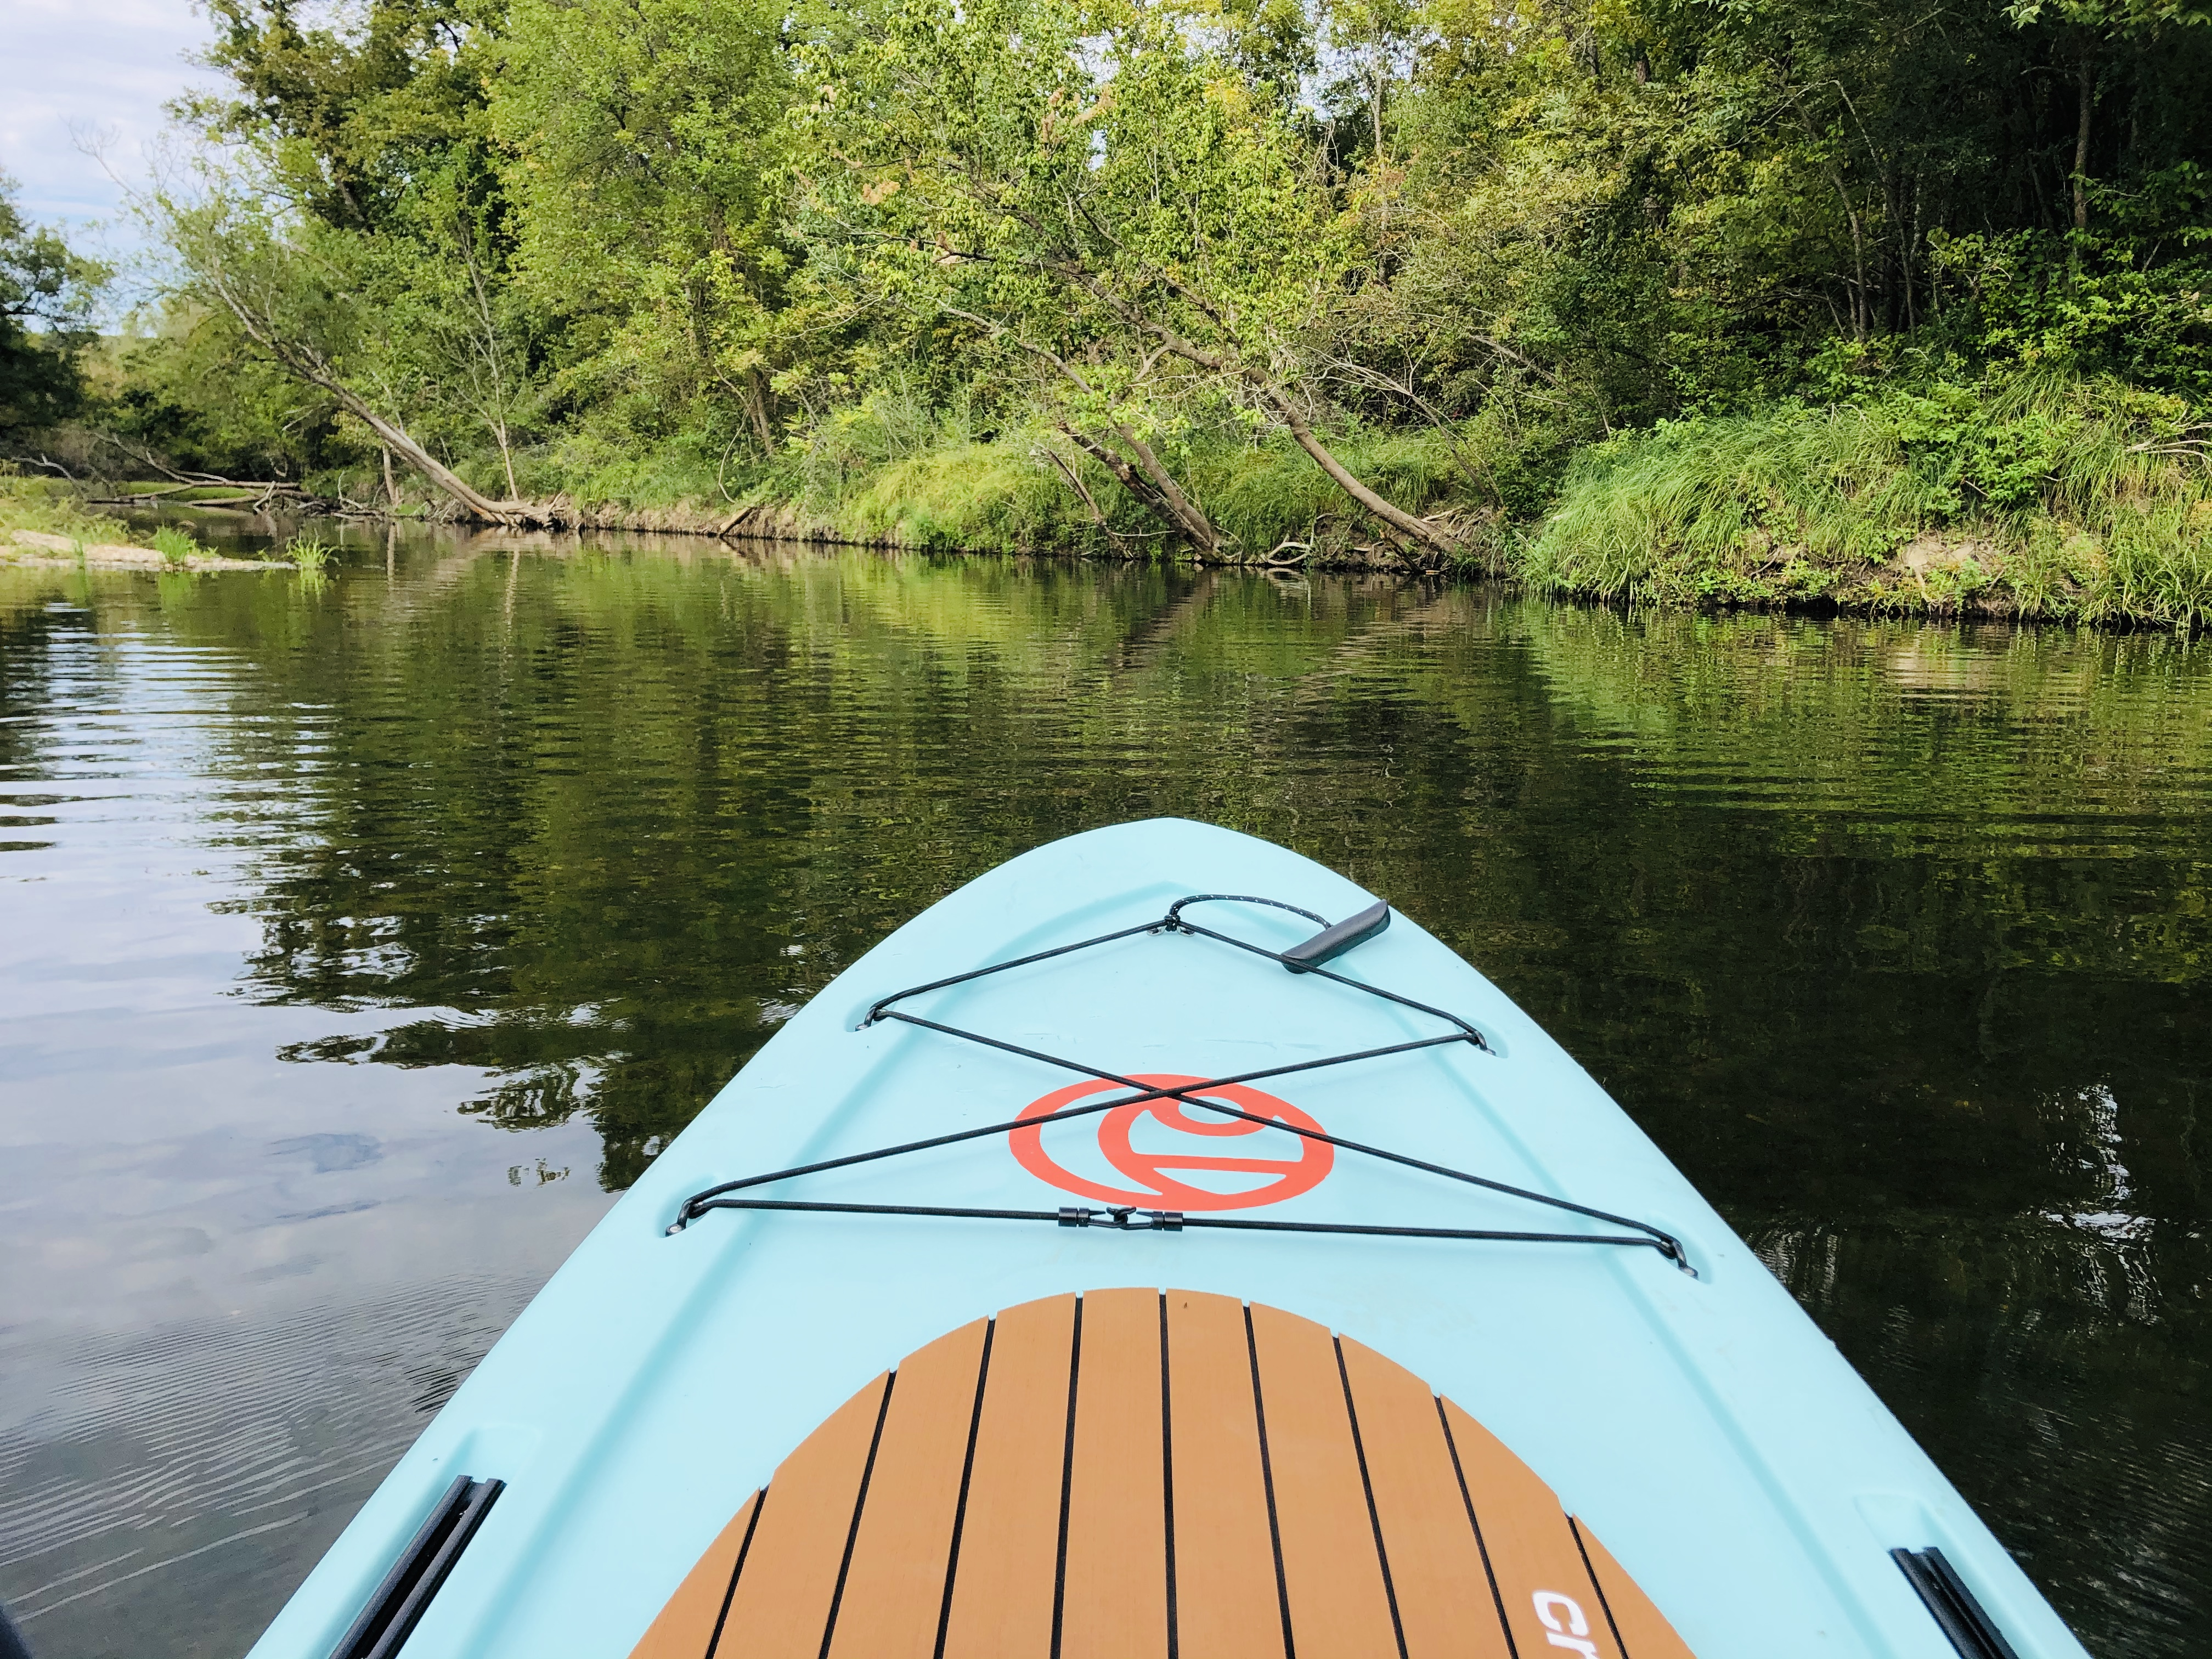 Crescent SUP+ Review Payne Outdoors Stand Up Paddleboard Rotomolded Made in the USA